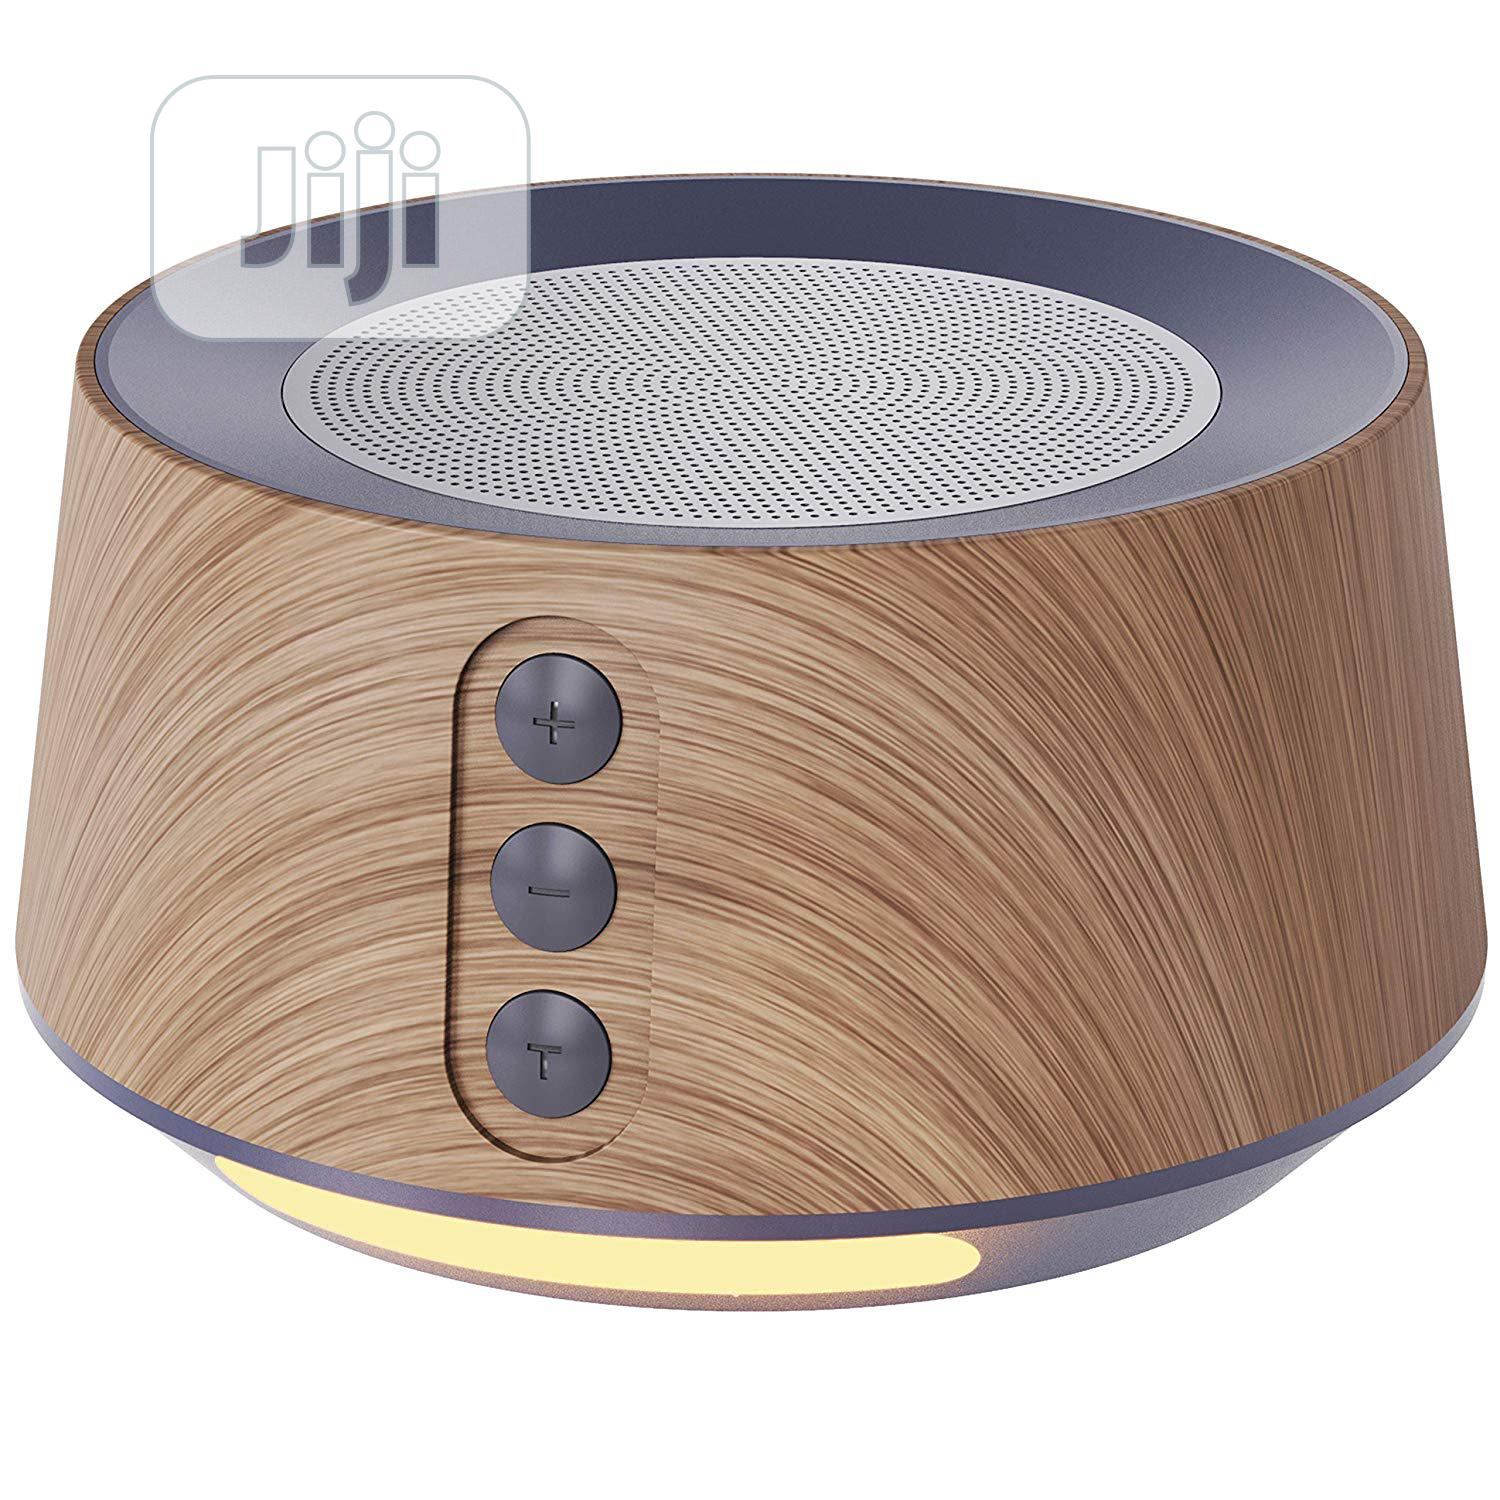 USA White Noise Machine For Baby Sleep & Relaxation, Letsfit Sound